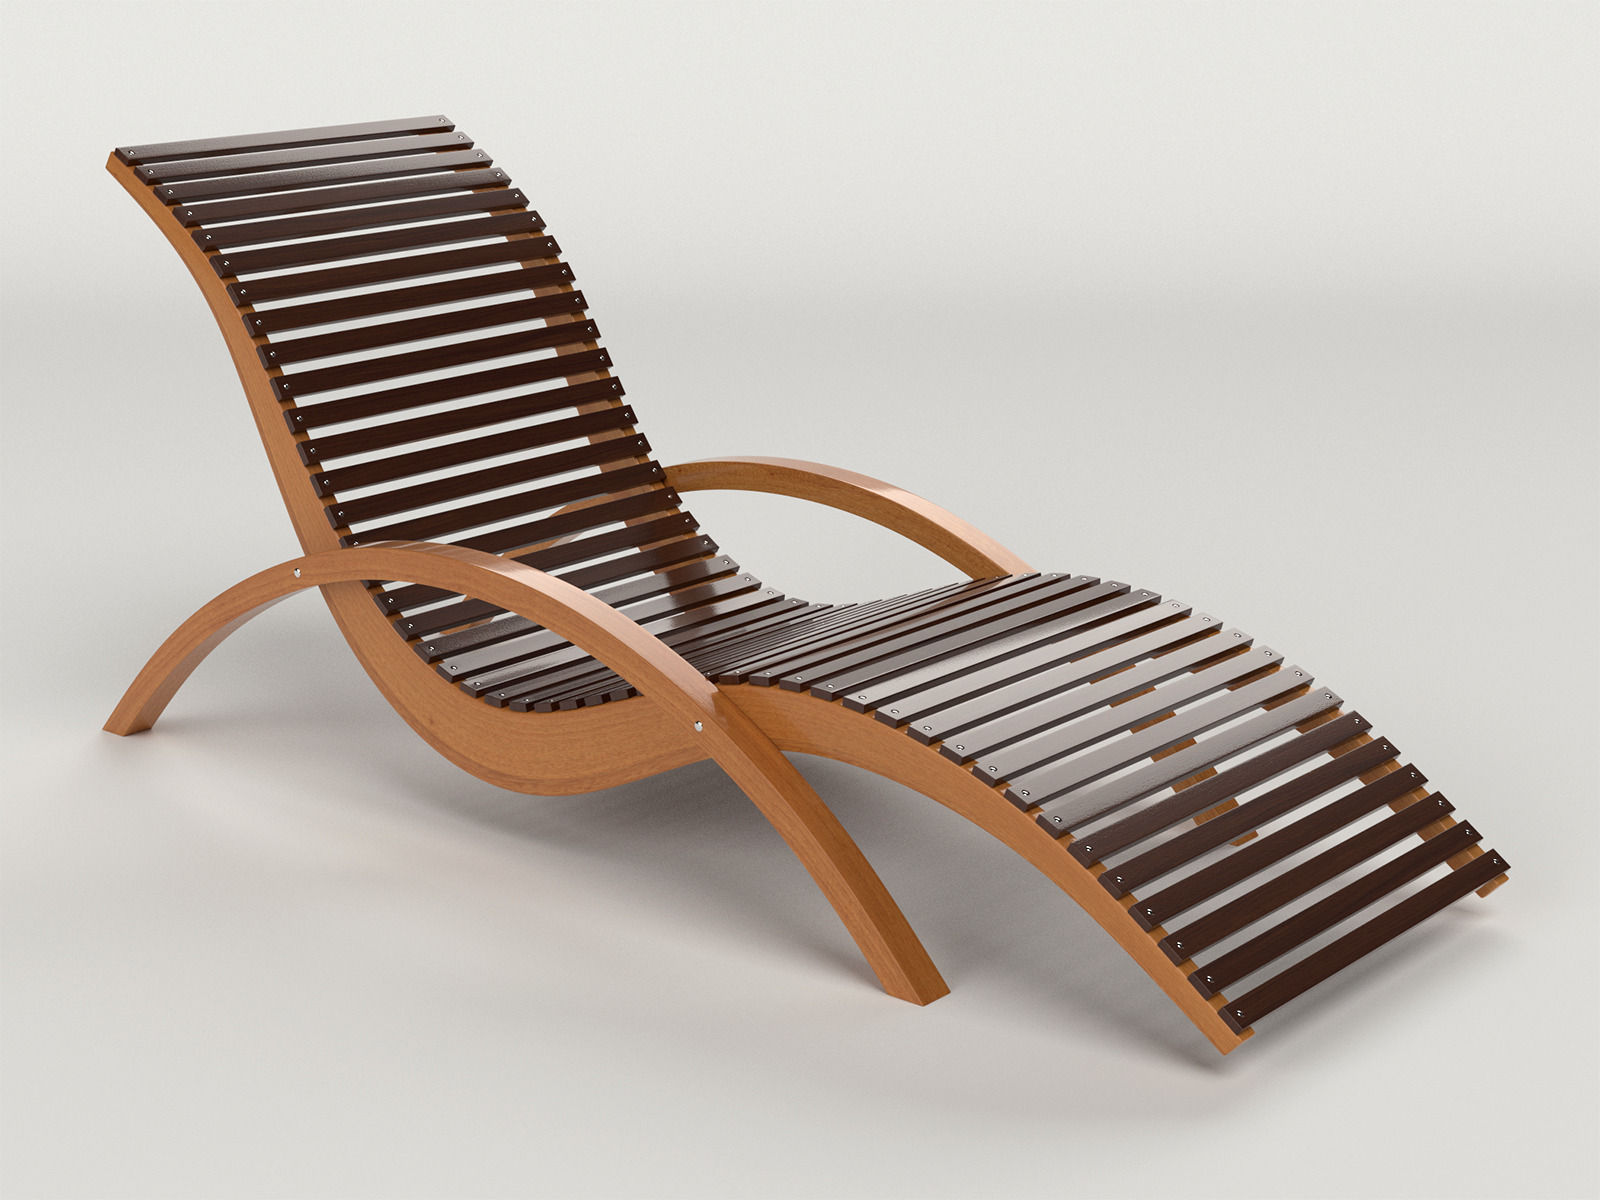 Beau Lounge Chair Outdoor Wood Patio Deck 3d Model Obj Dxf Mtl 1 ...